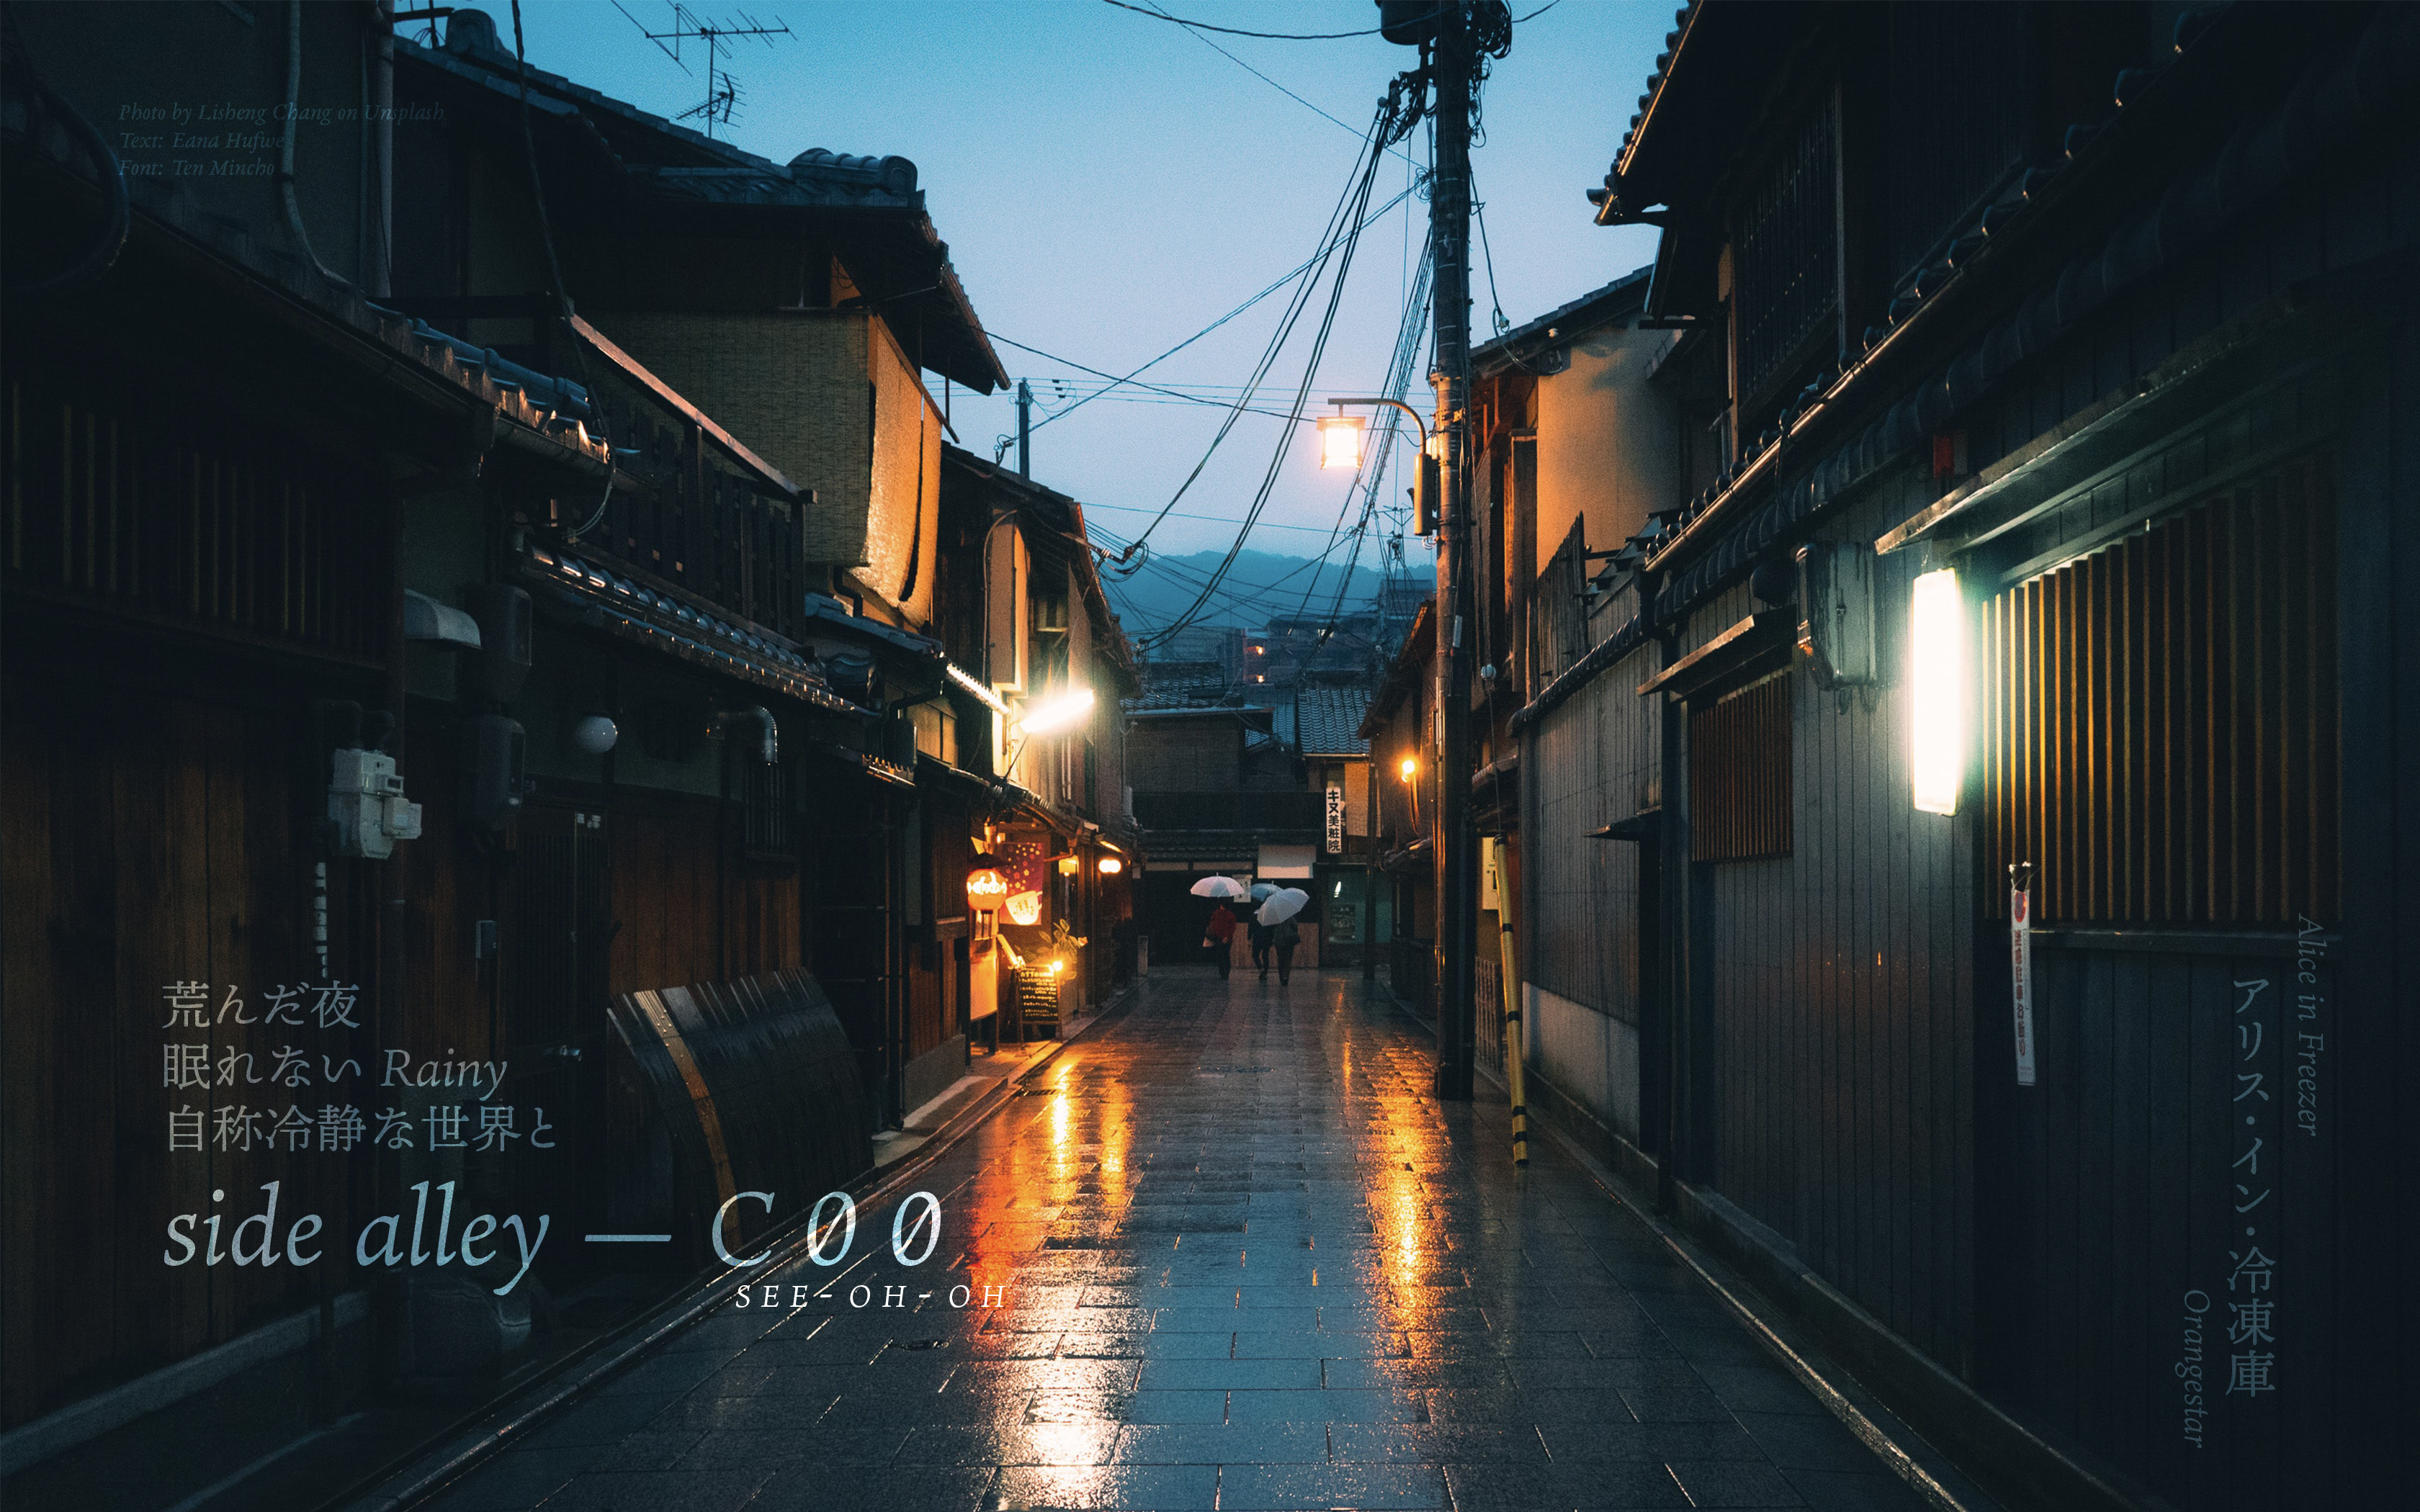 Side alley – C 0 0